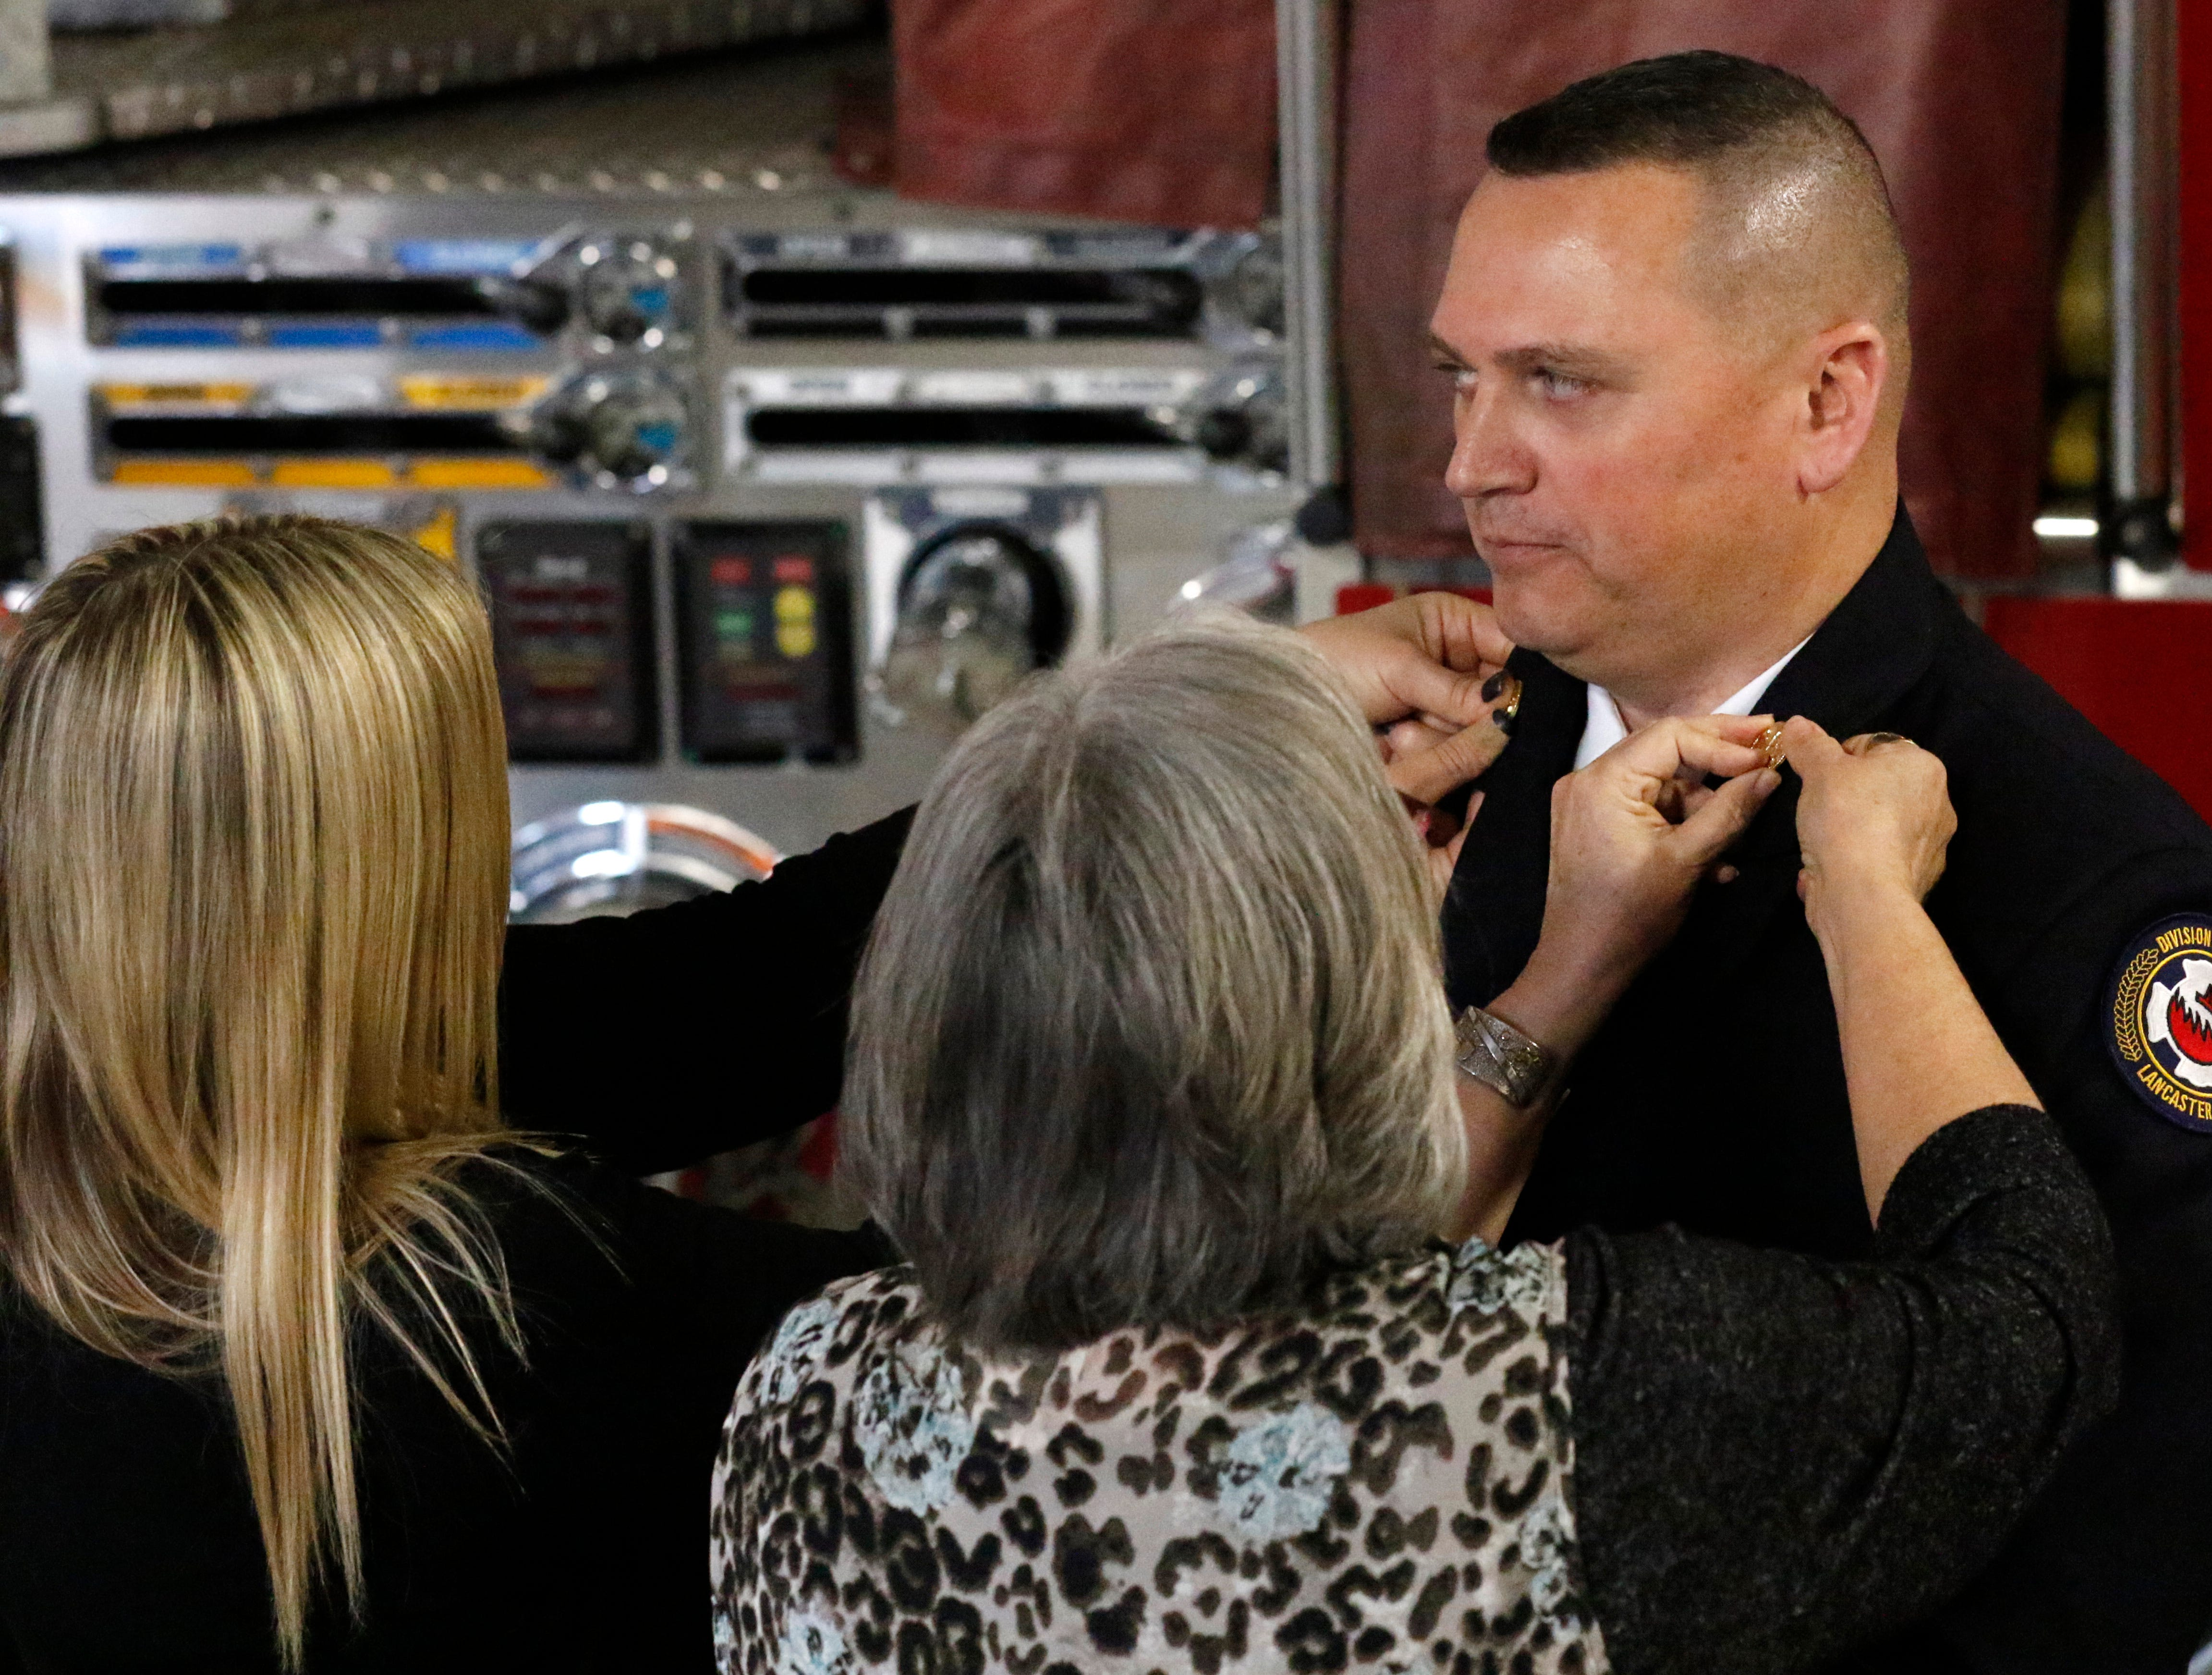 Family members pin Assistant Chief K.J. Watts' new rank insignia to his uniform jacket Friday afternoon, Feb. 15, 2019, at Engine House One in Lancaster.